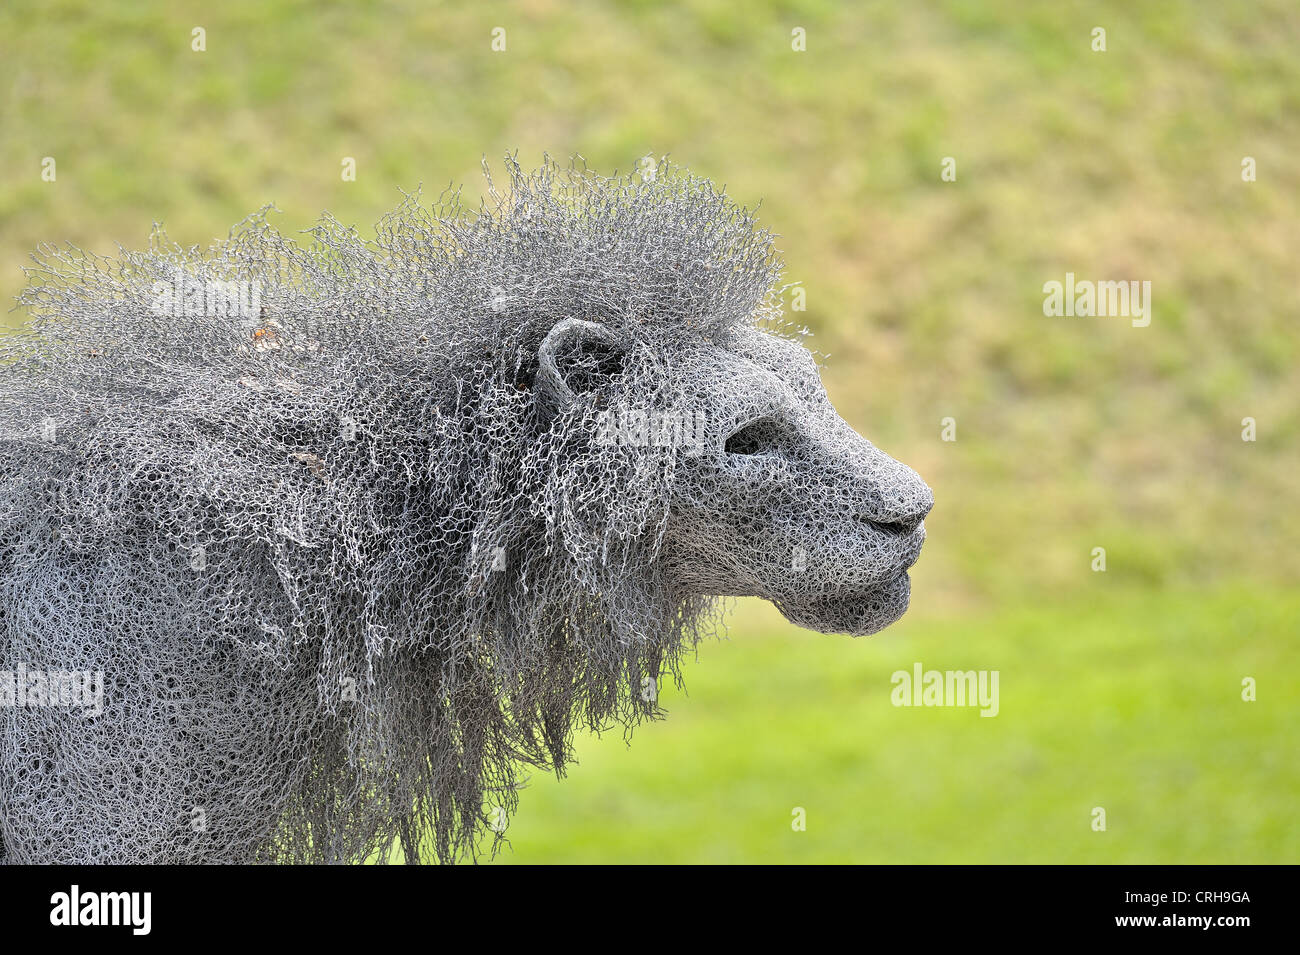 Lion Wire Sculpture Tower of London Stock Photo: 48938522 - Alamy